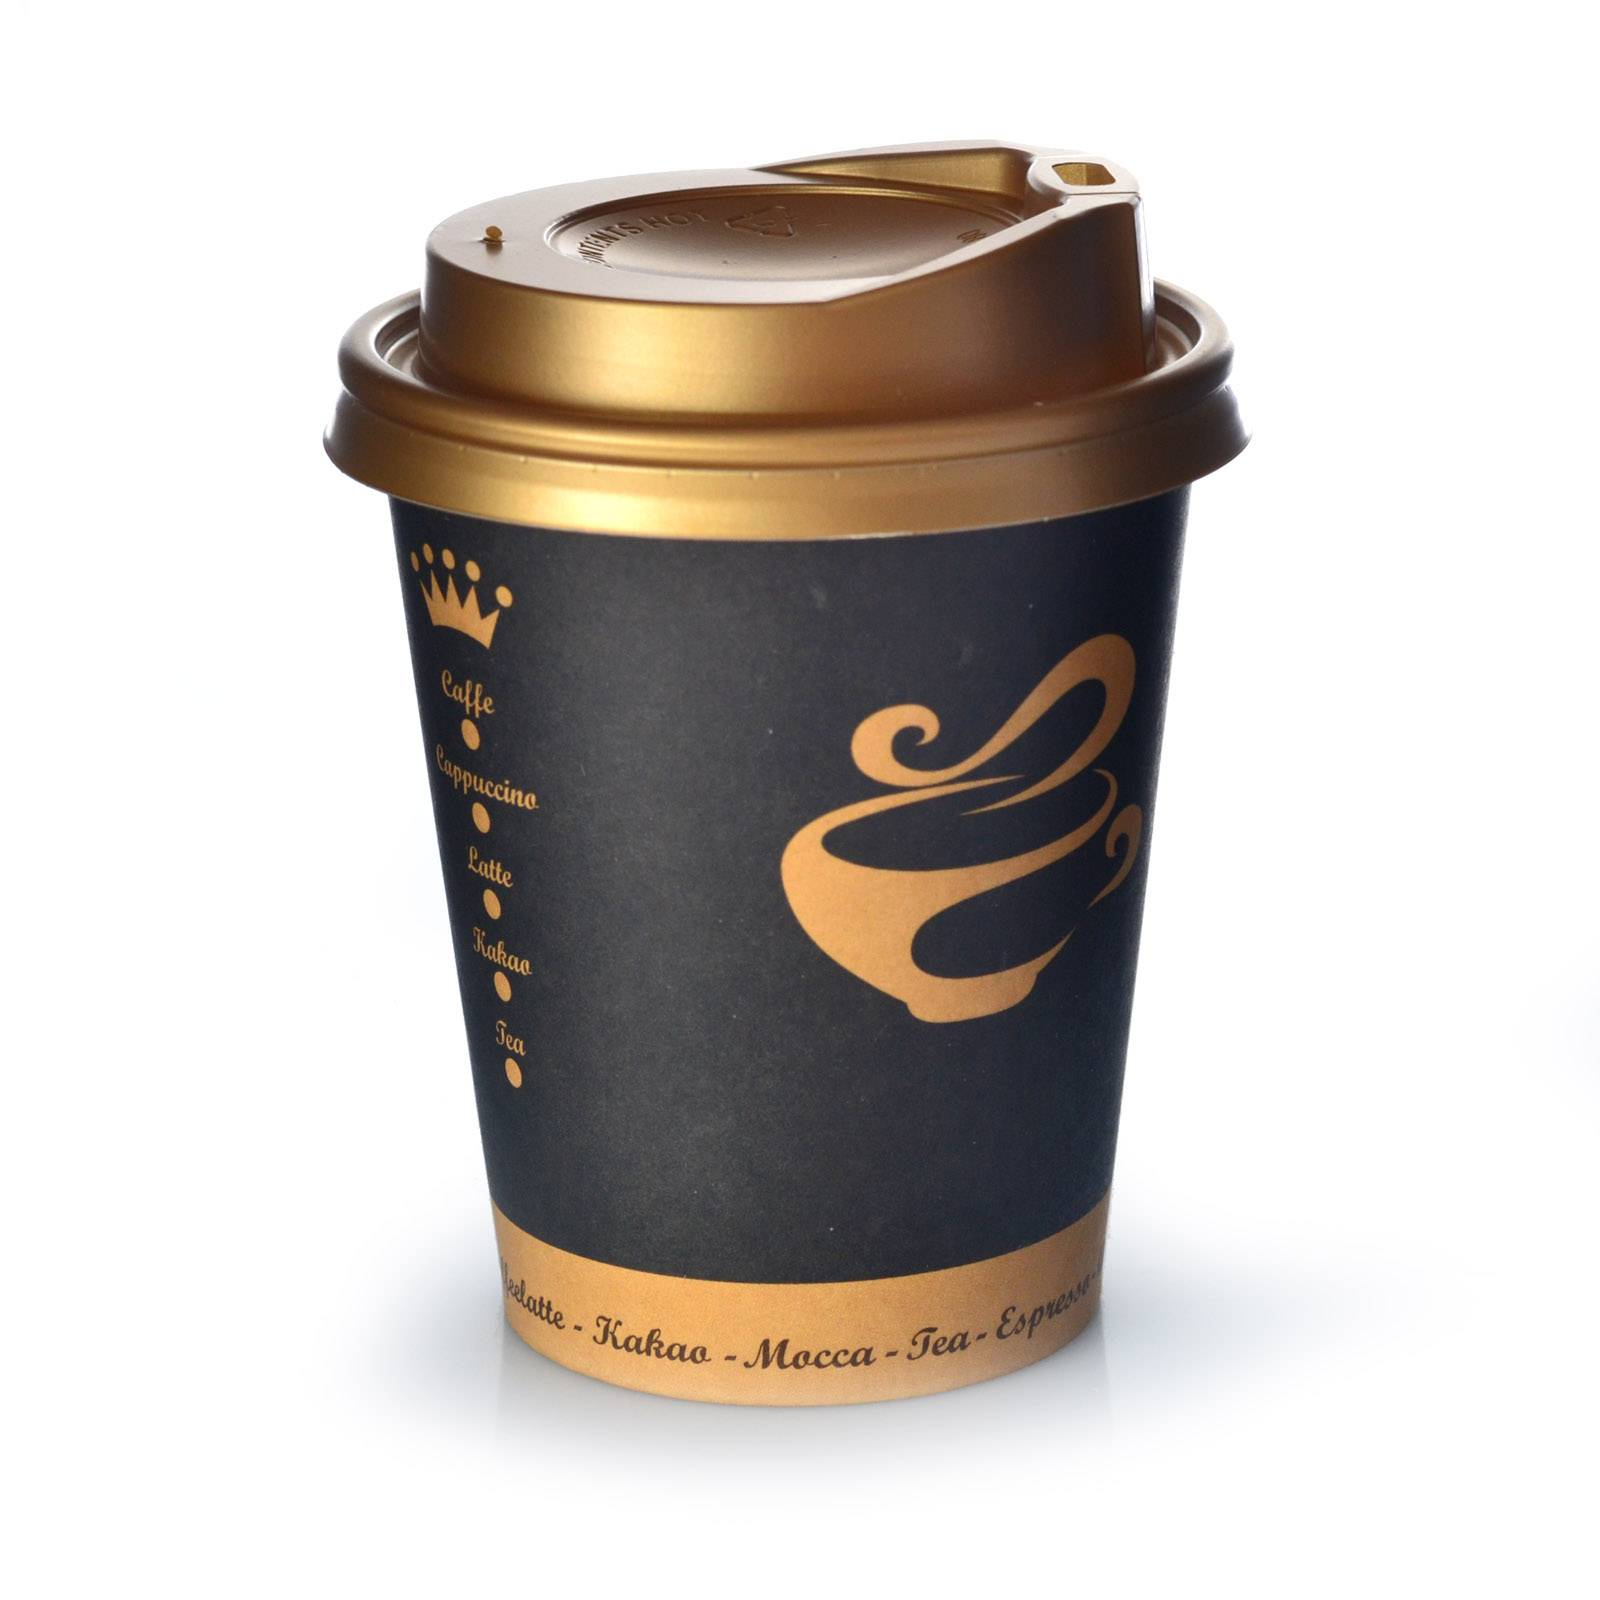 coffee to go becher golden cup 0 2l mit deckel gold 200 stk